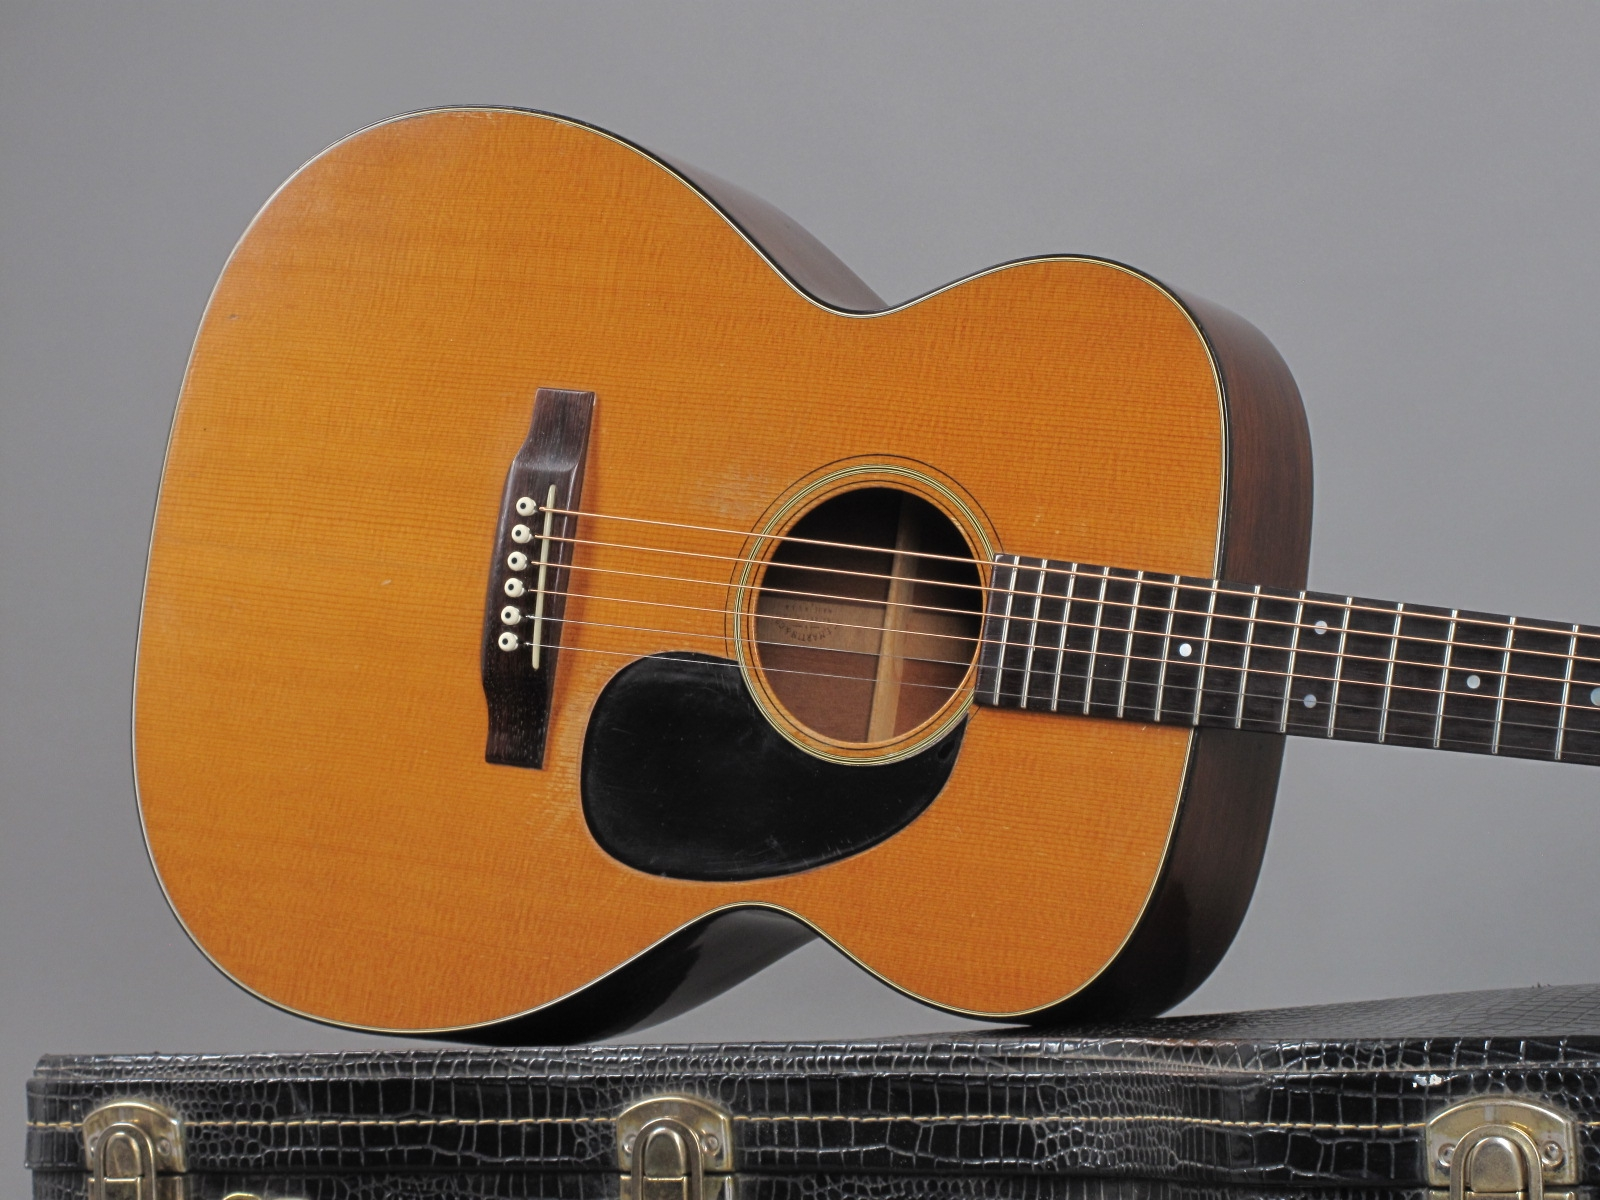 https://guitarpoint.de/app/uploads/products/1969-martin-000-18-natural/1969-Martin-000-18-Natural-252425-19.jpg